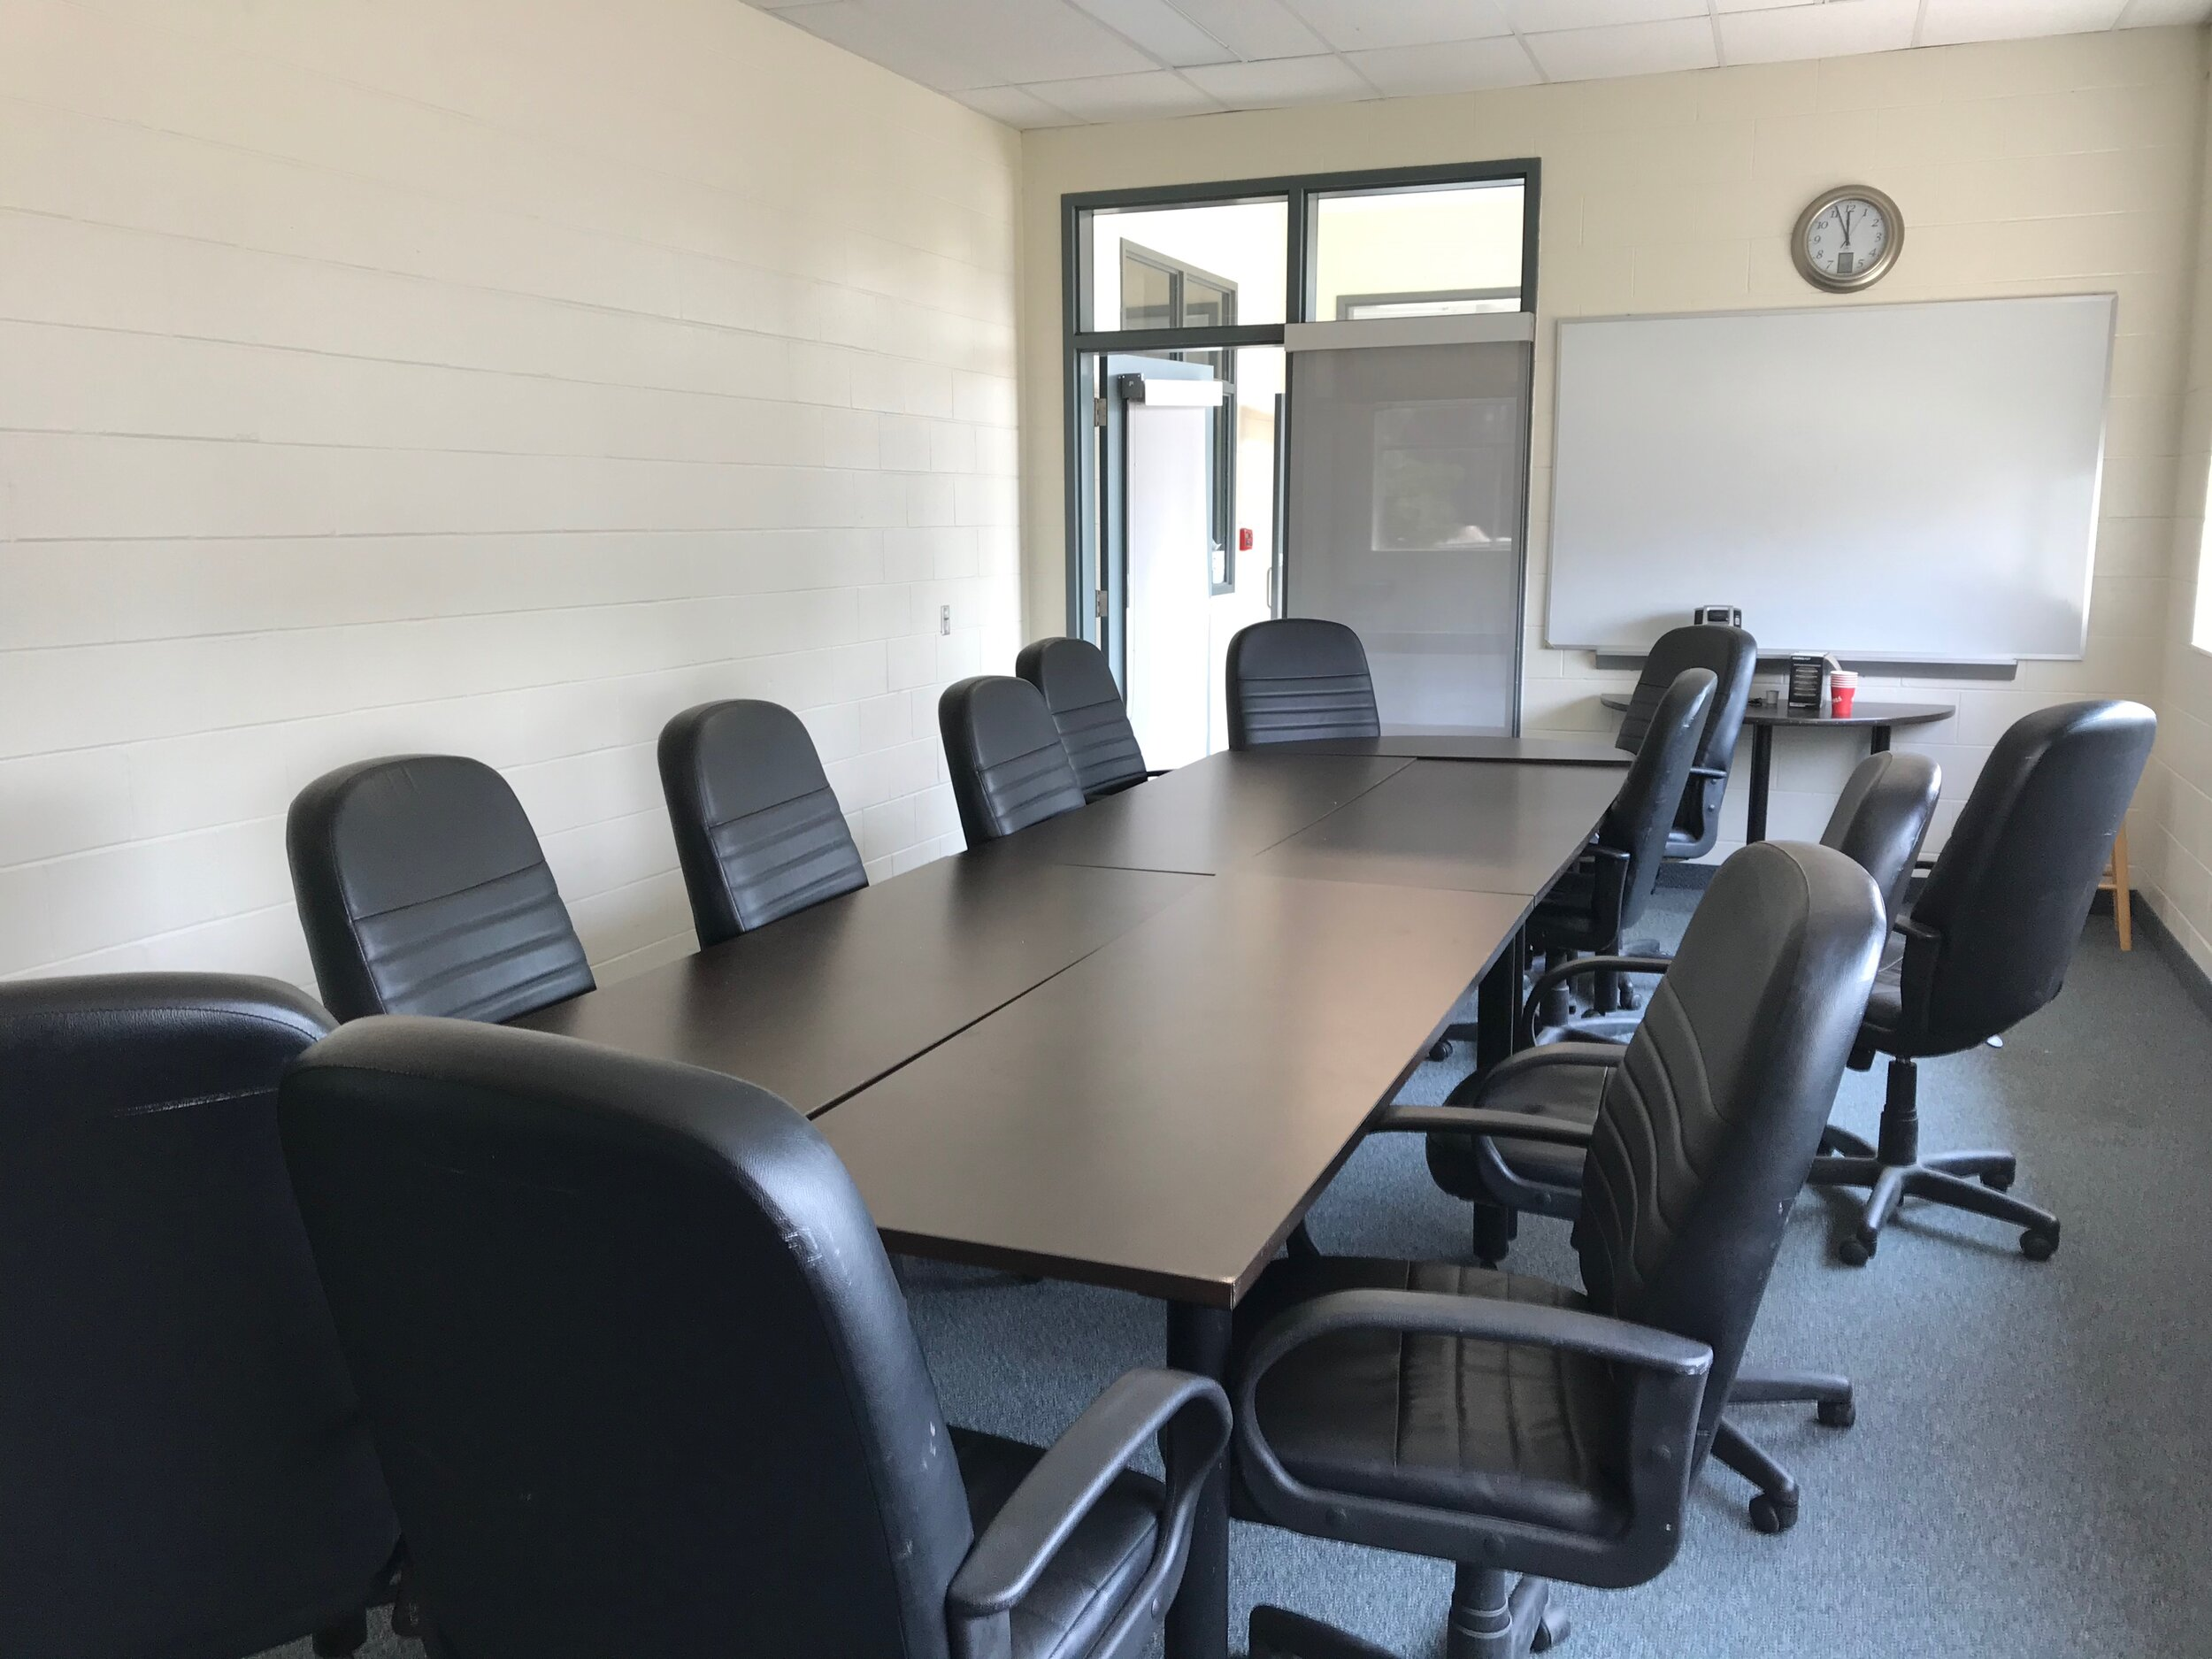 Our Meeting Room - The Board Room comfortably seats 12 people. Consider it for your next meeting. Wifi enabled.